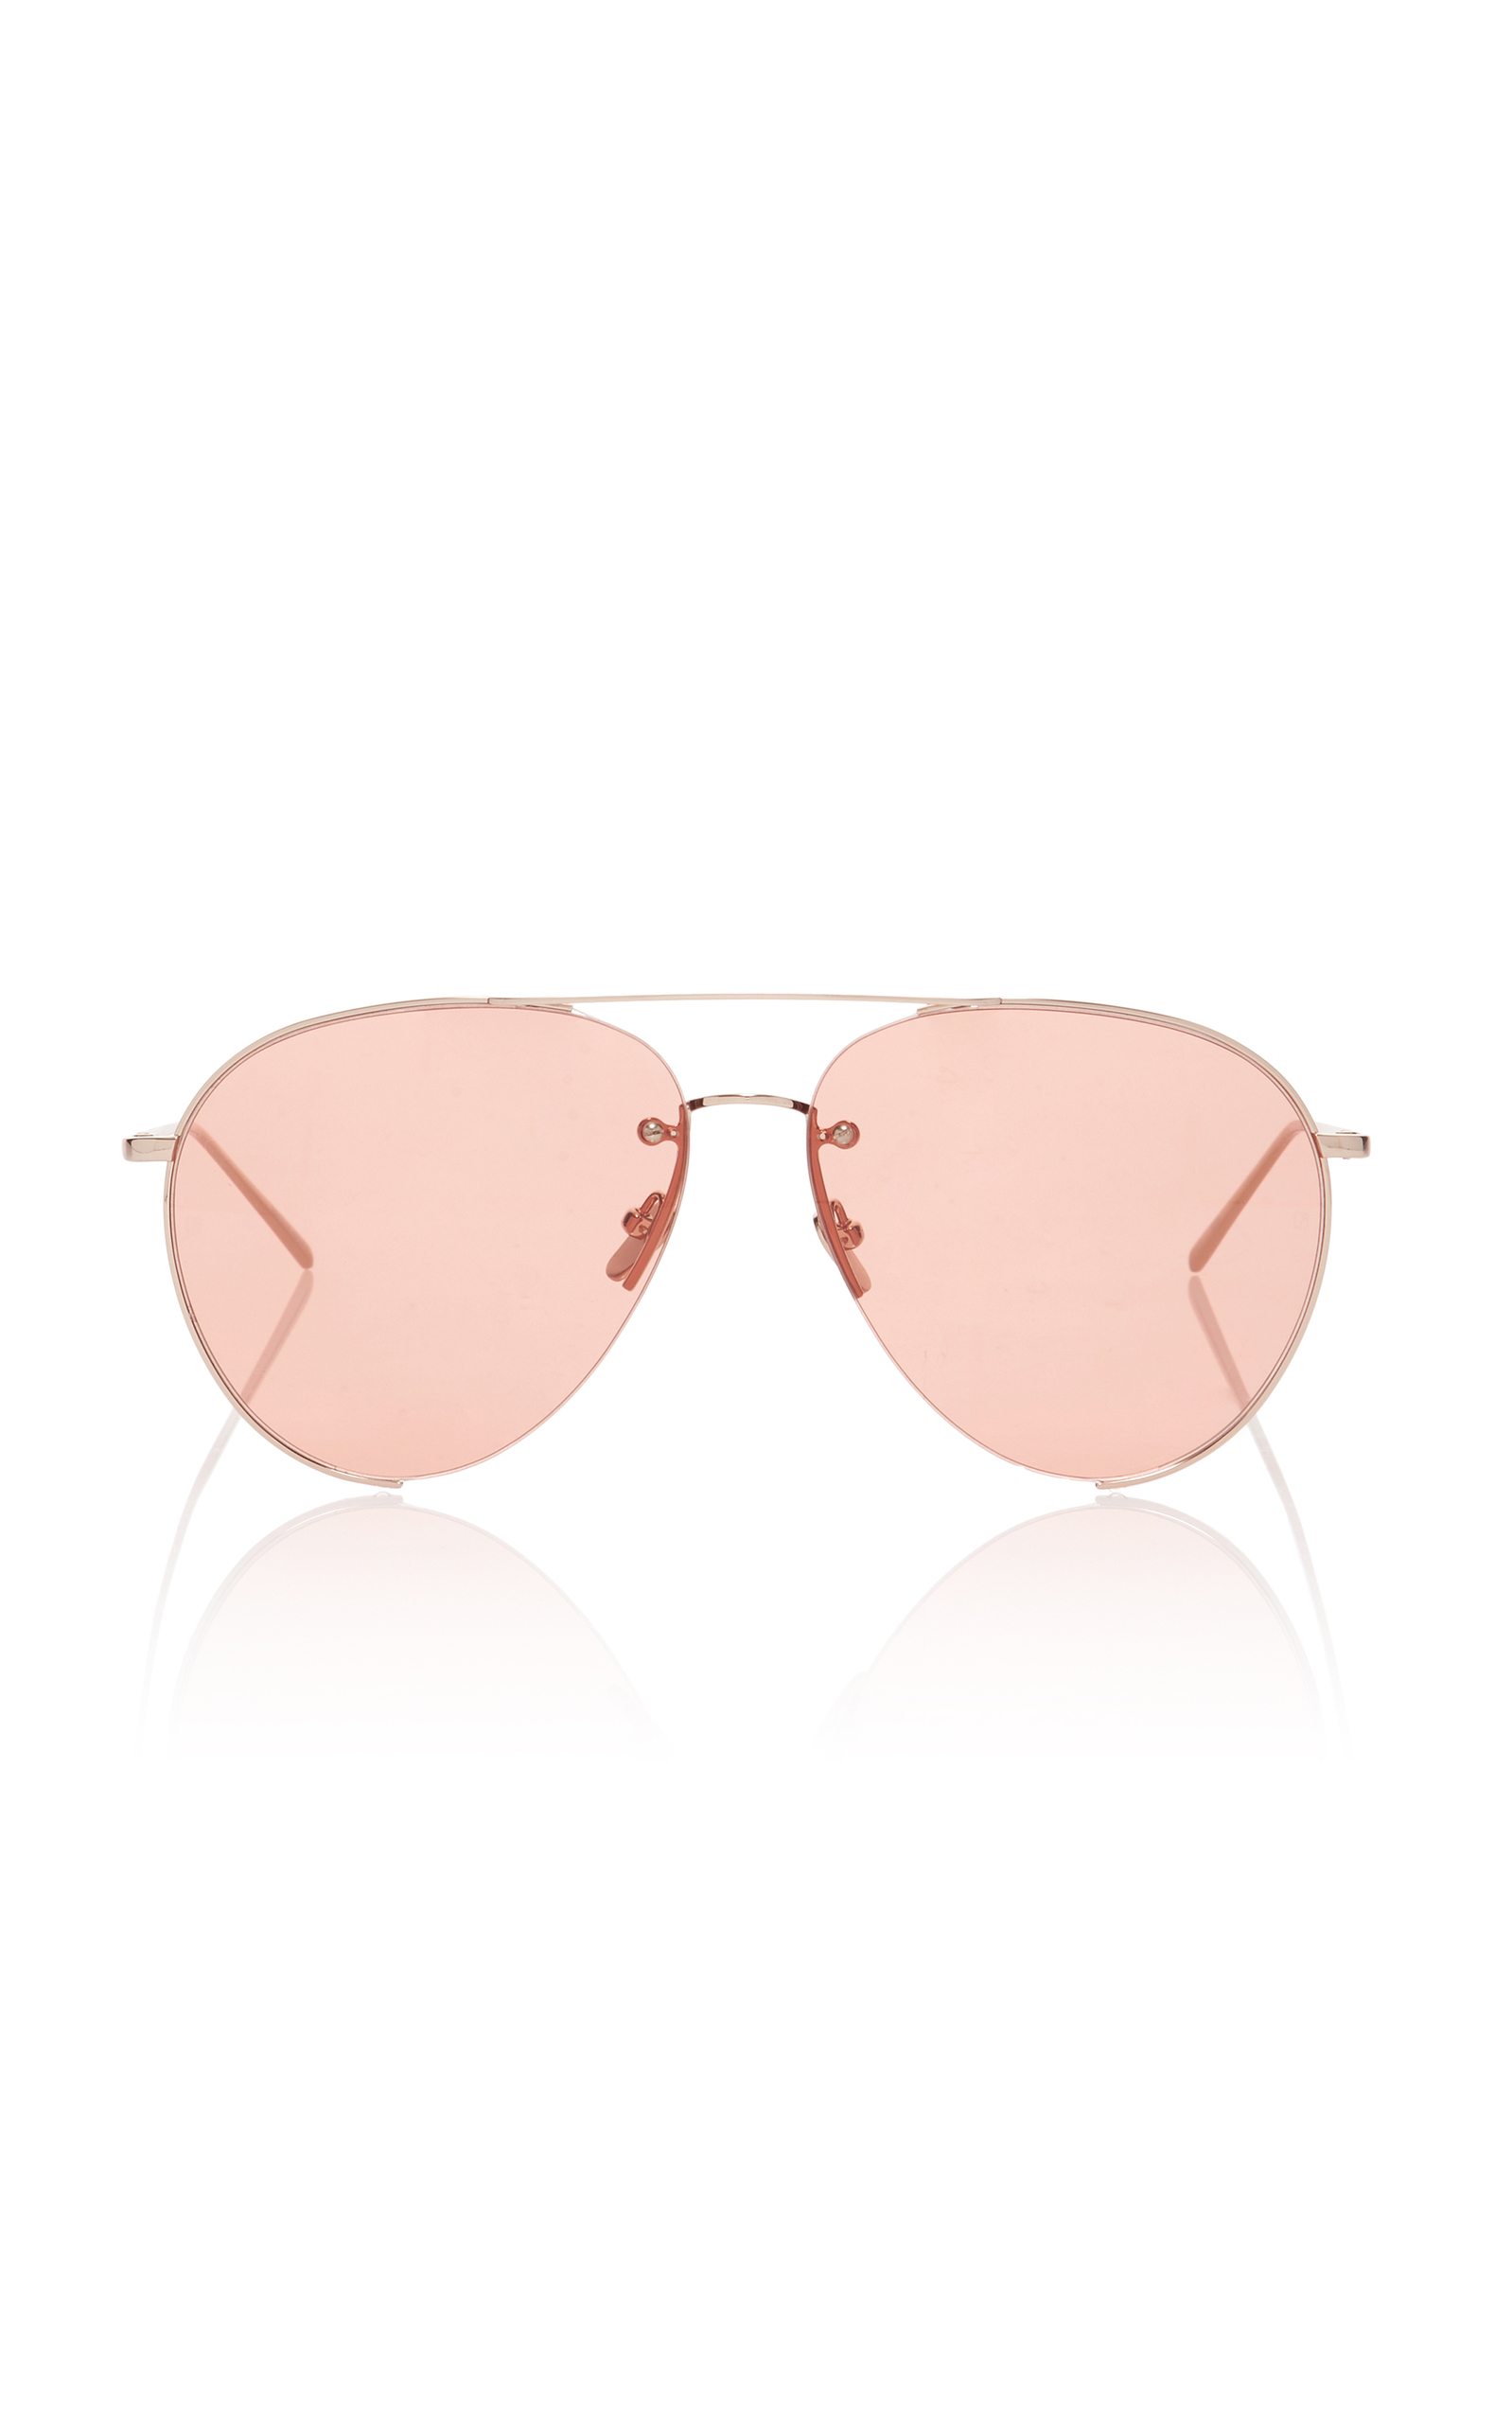 69064839d22 Linda Farrow Gold-Tone Aviator-Style Sunglasses In Orange ...